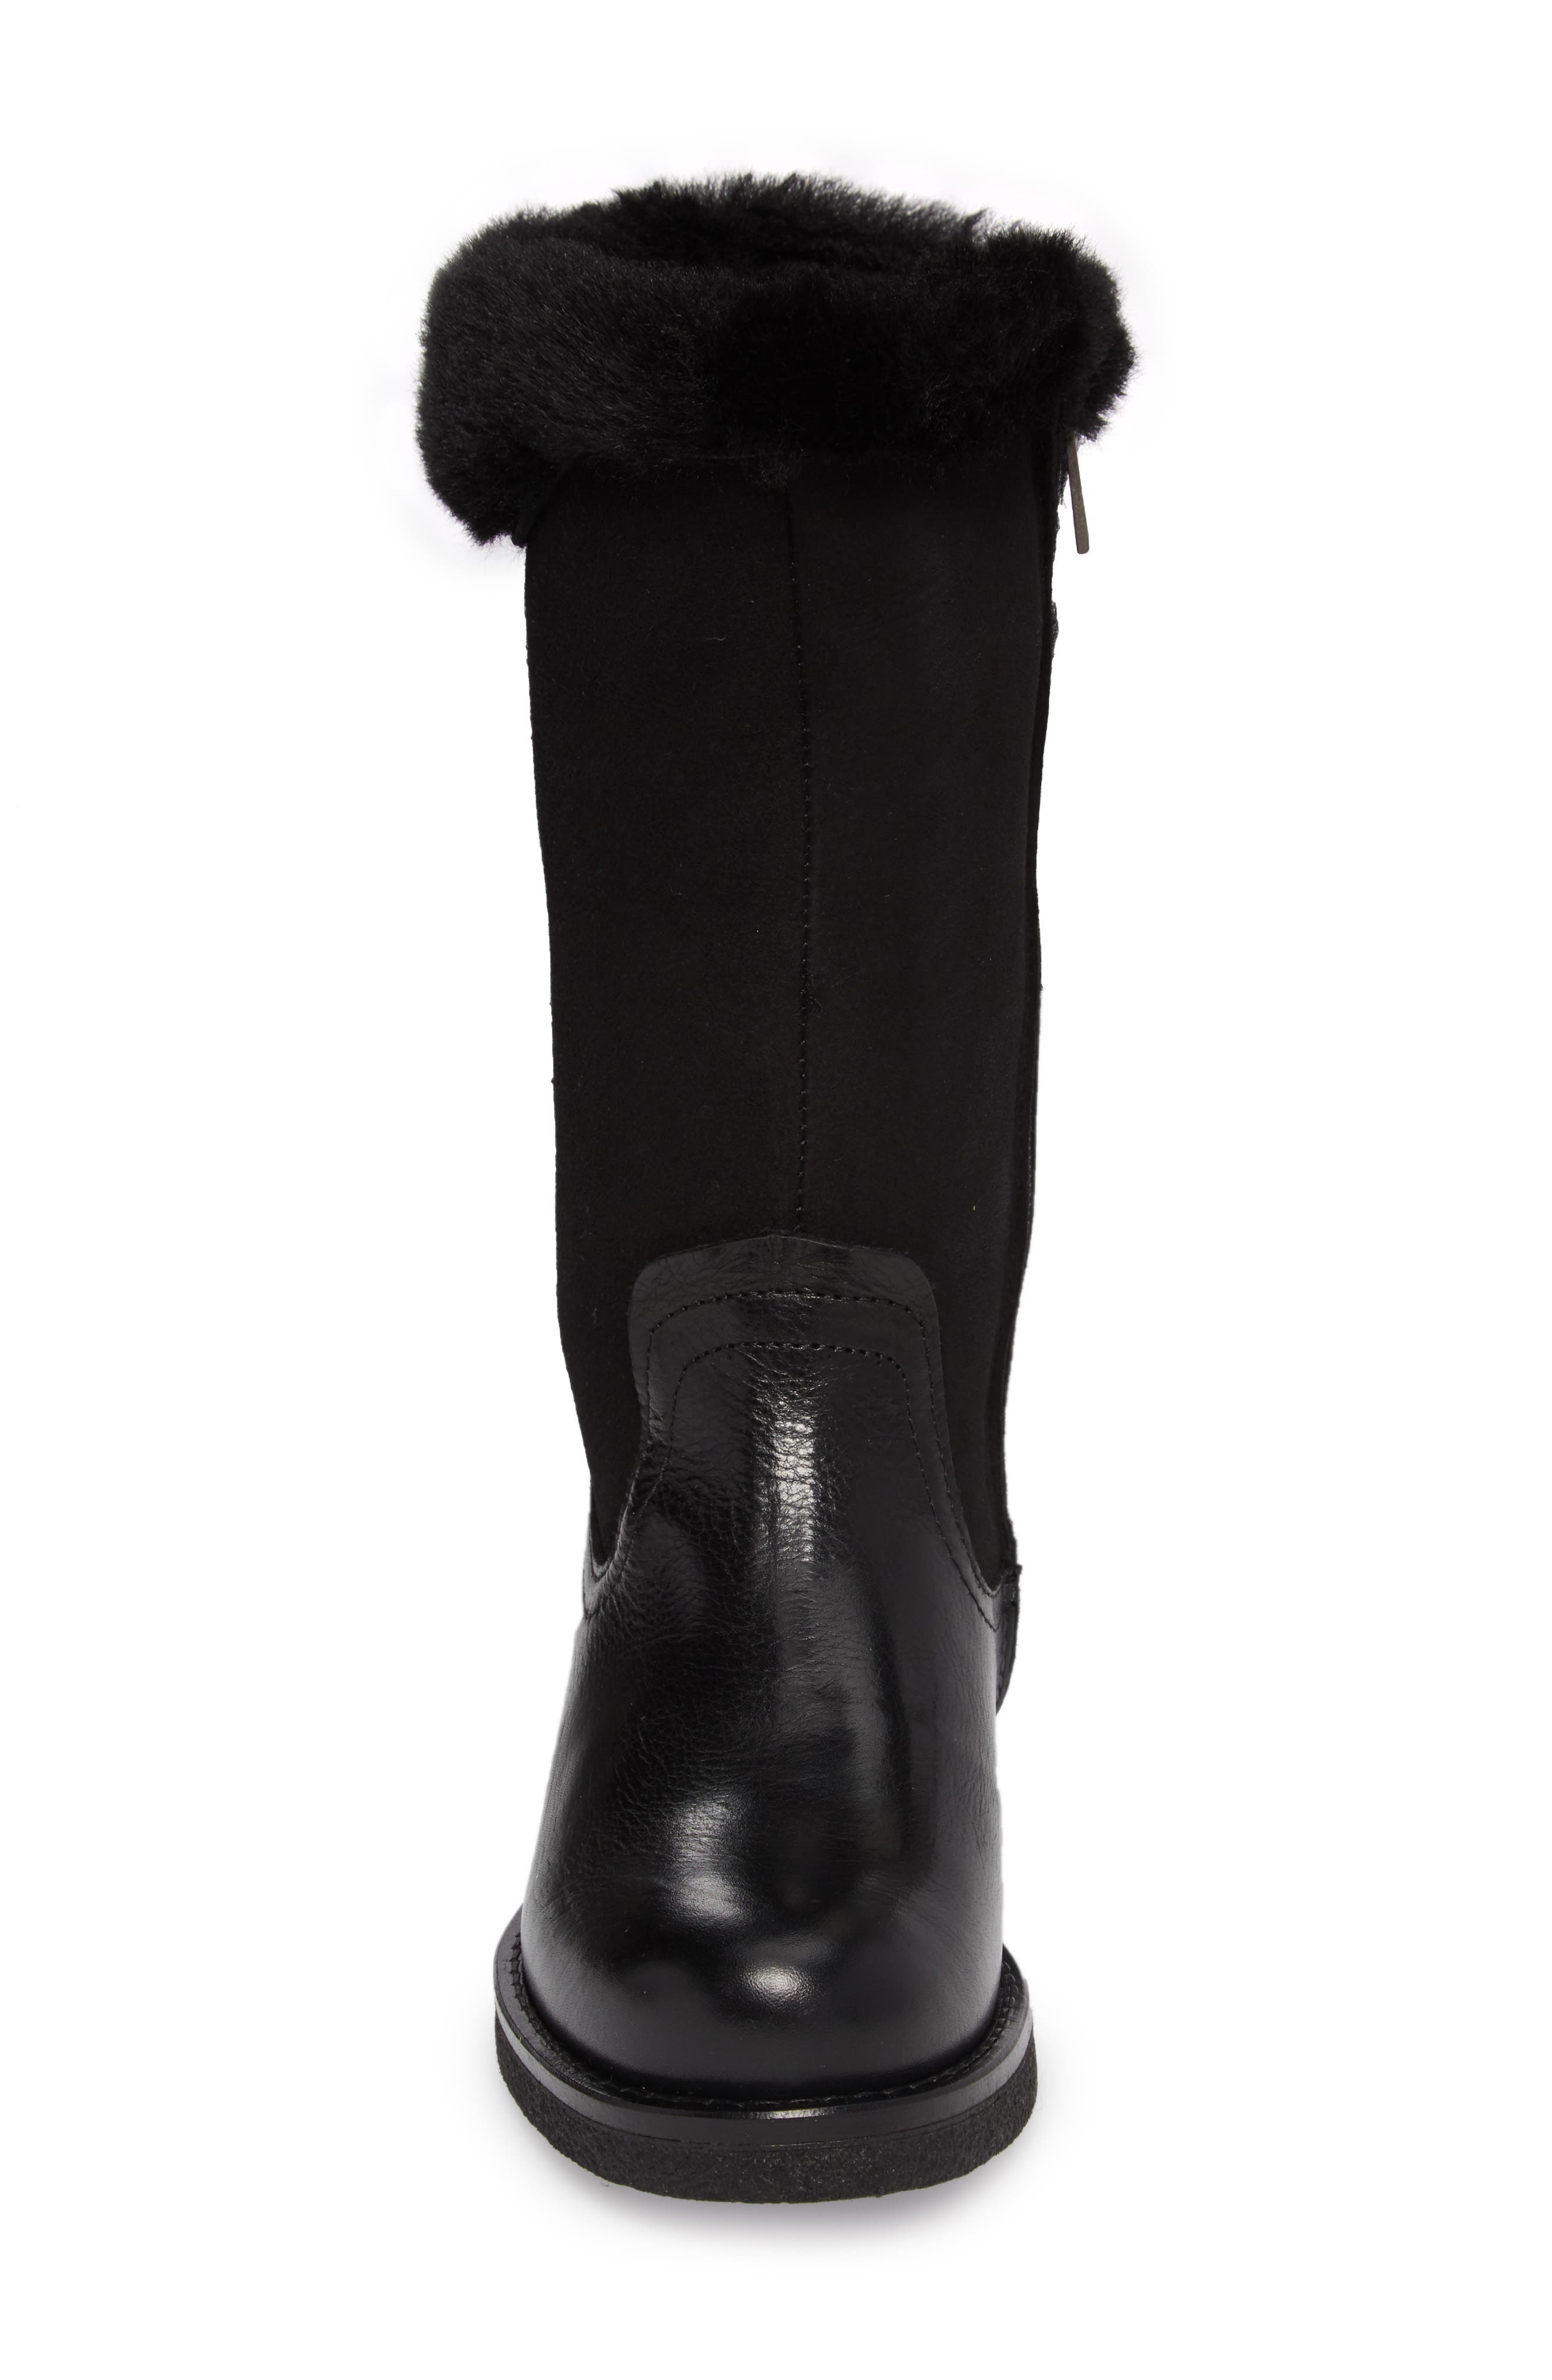 Amarillo Waterproof Insulated Snow Boot,                             Alternate thumbnail 4, color,                             Black Fur Leather